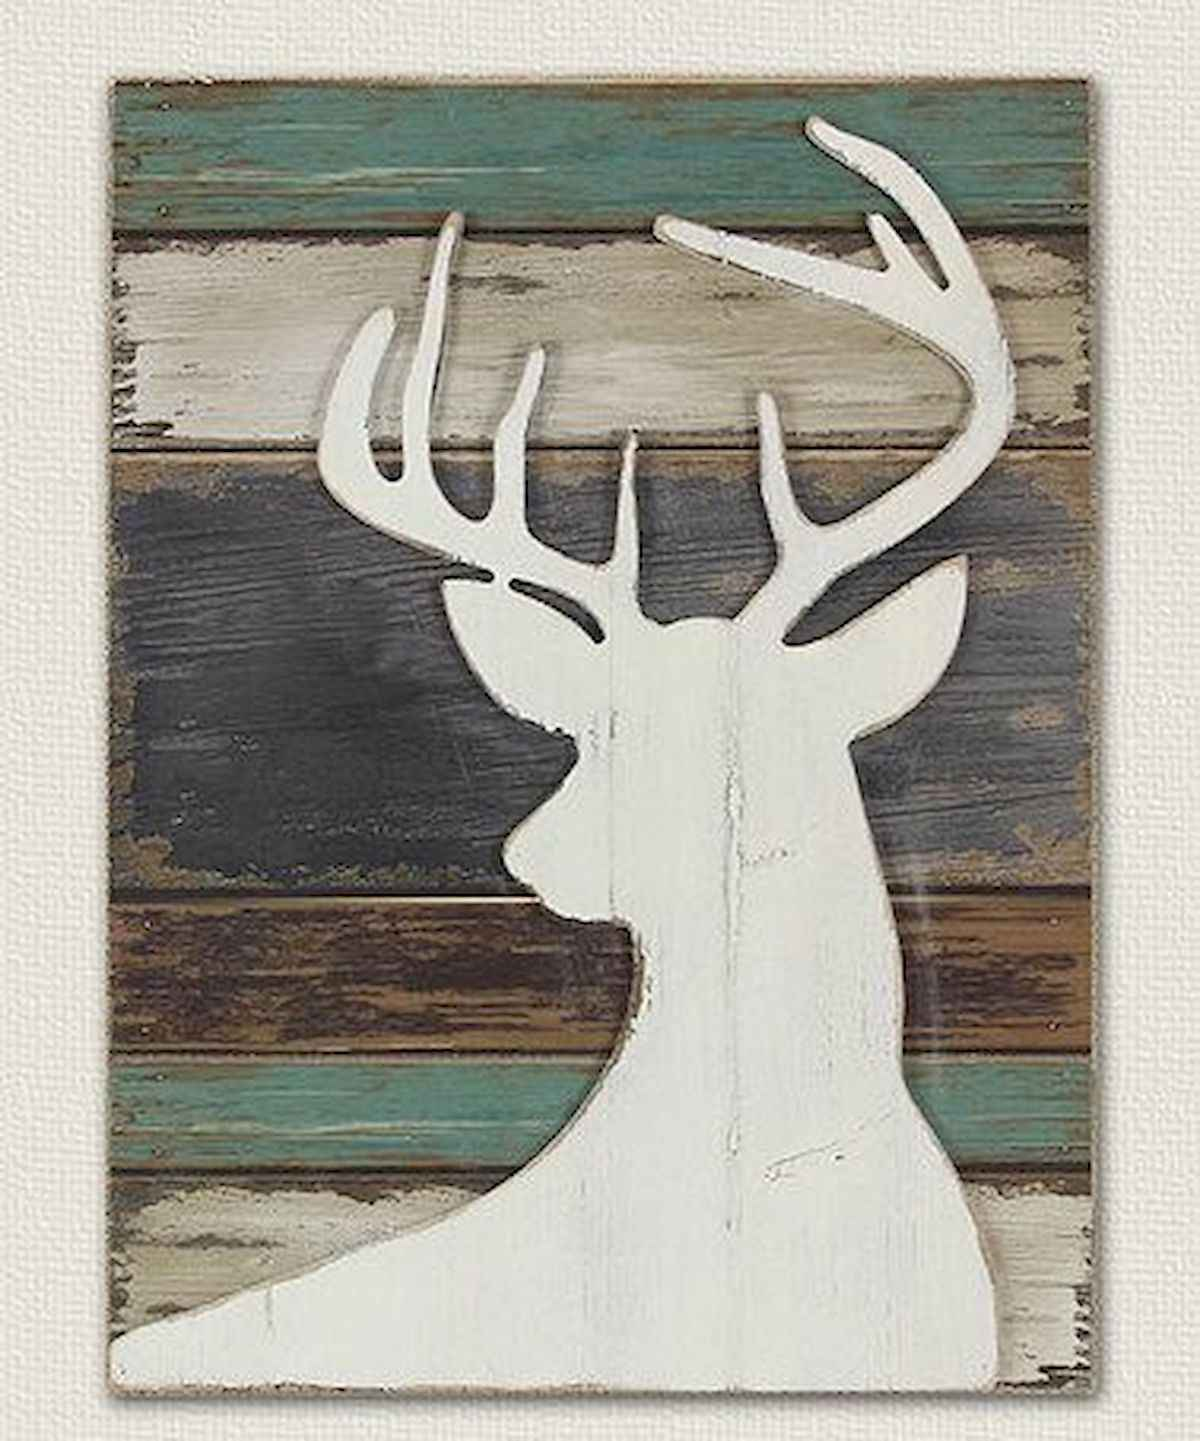 60 awesome wall art christmas ideas decorations (24)